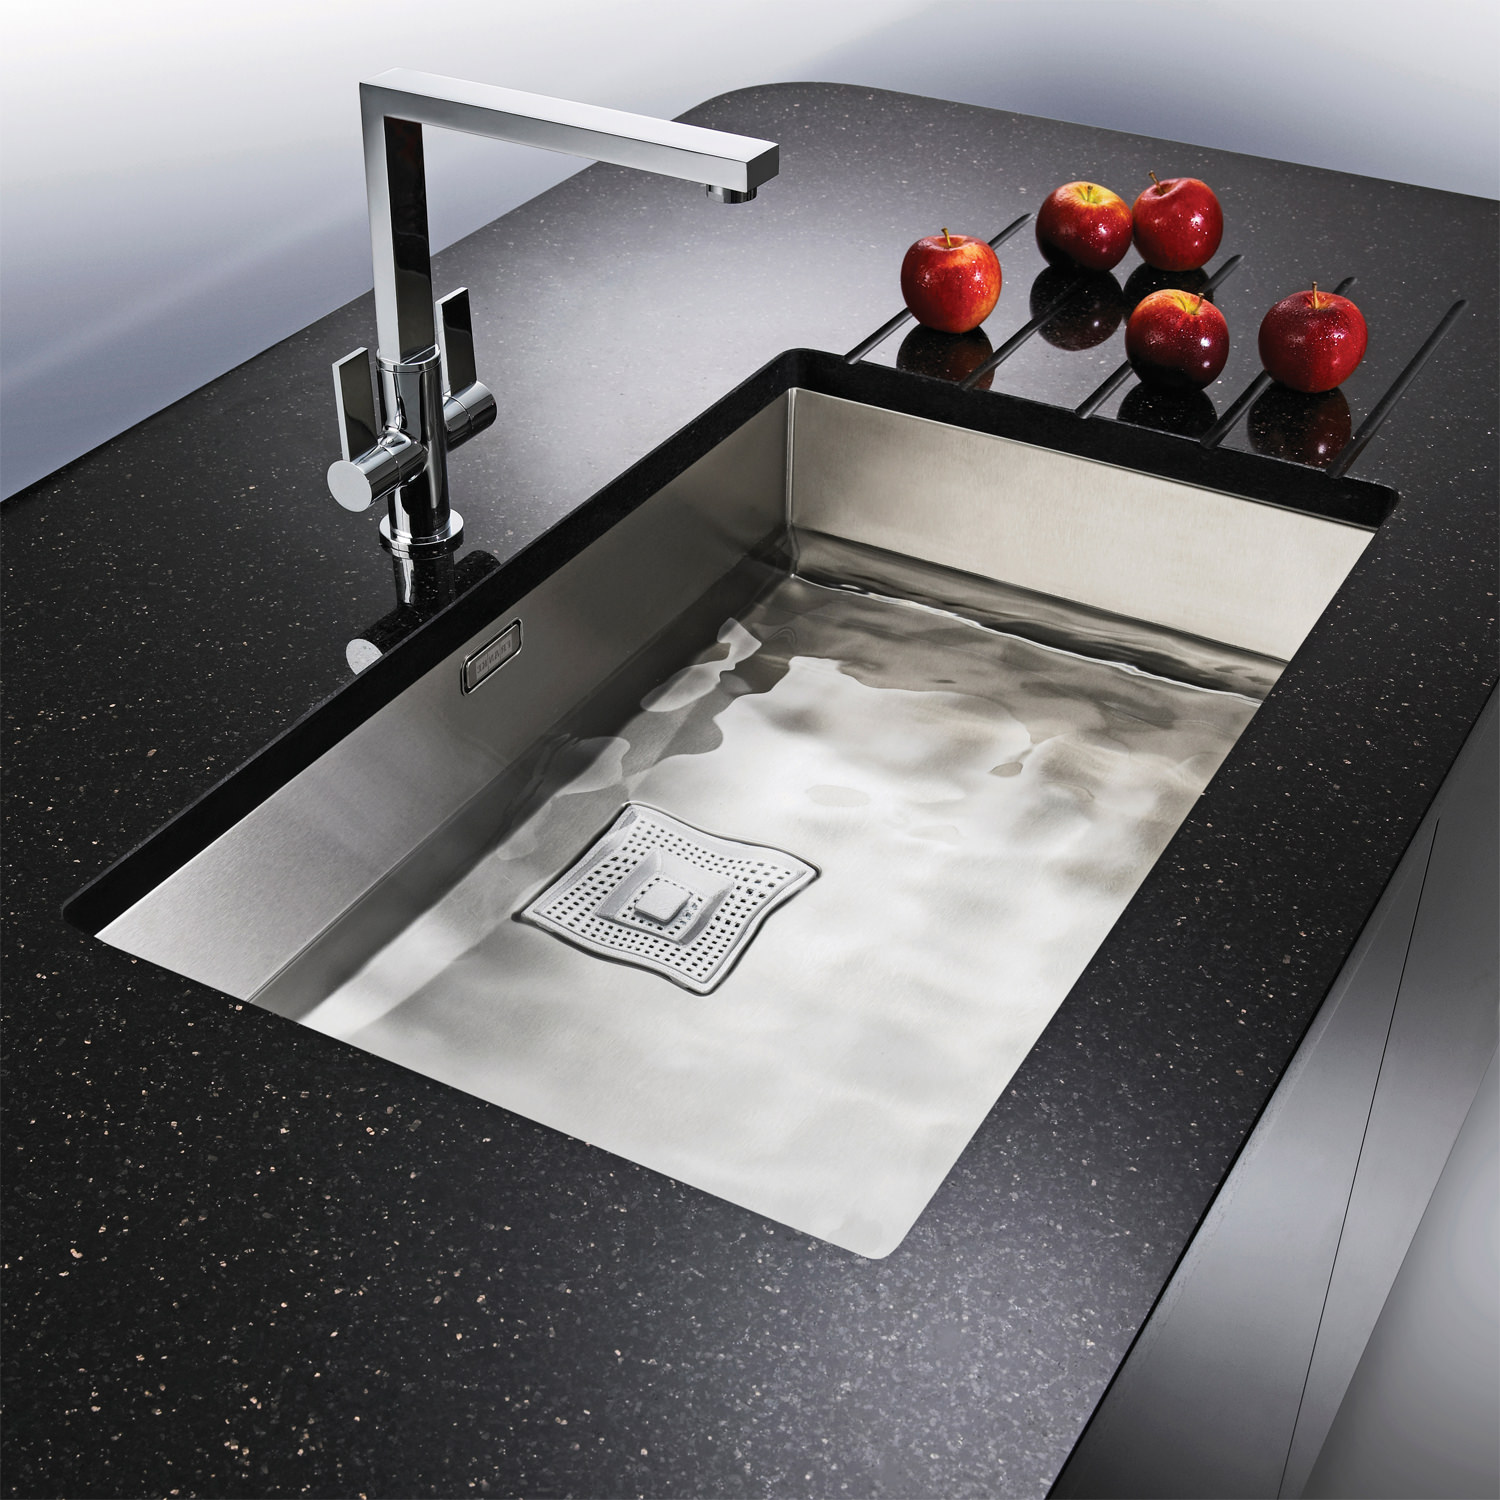 Franke Peak PKX 110 70 Stainless Steel 1.0 Bowl Undermount Sink